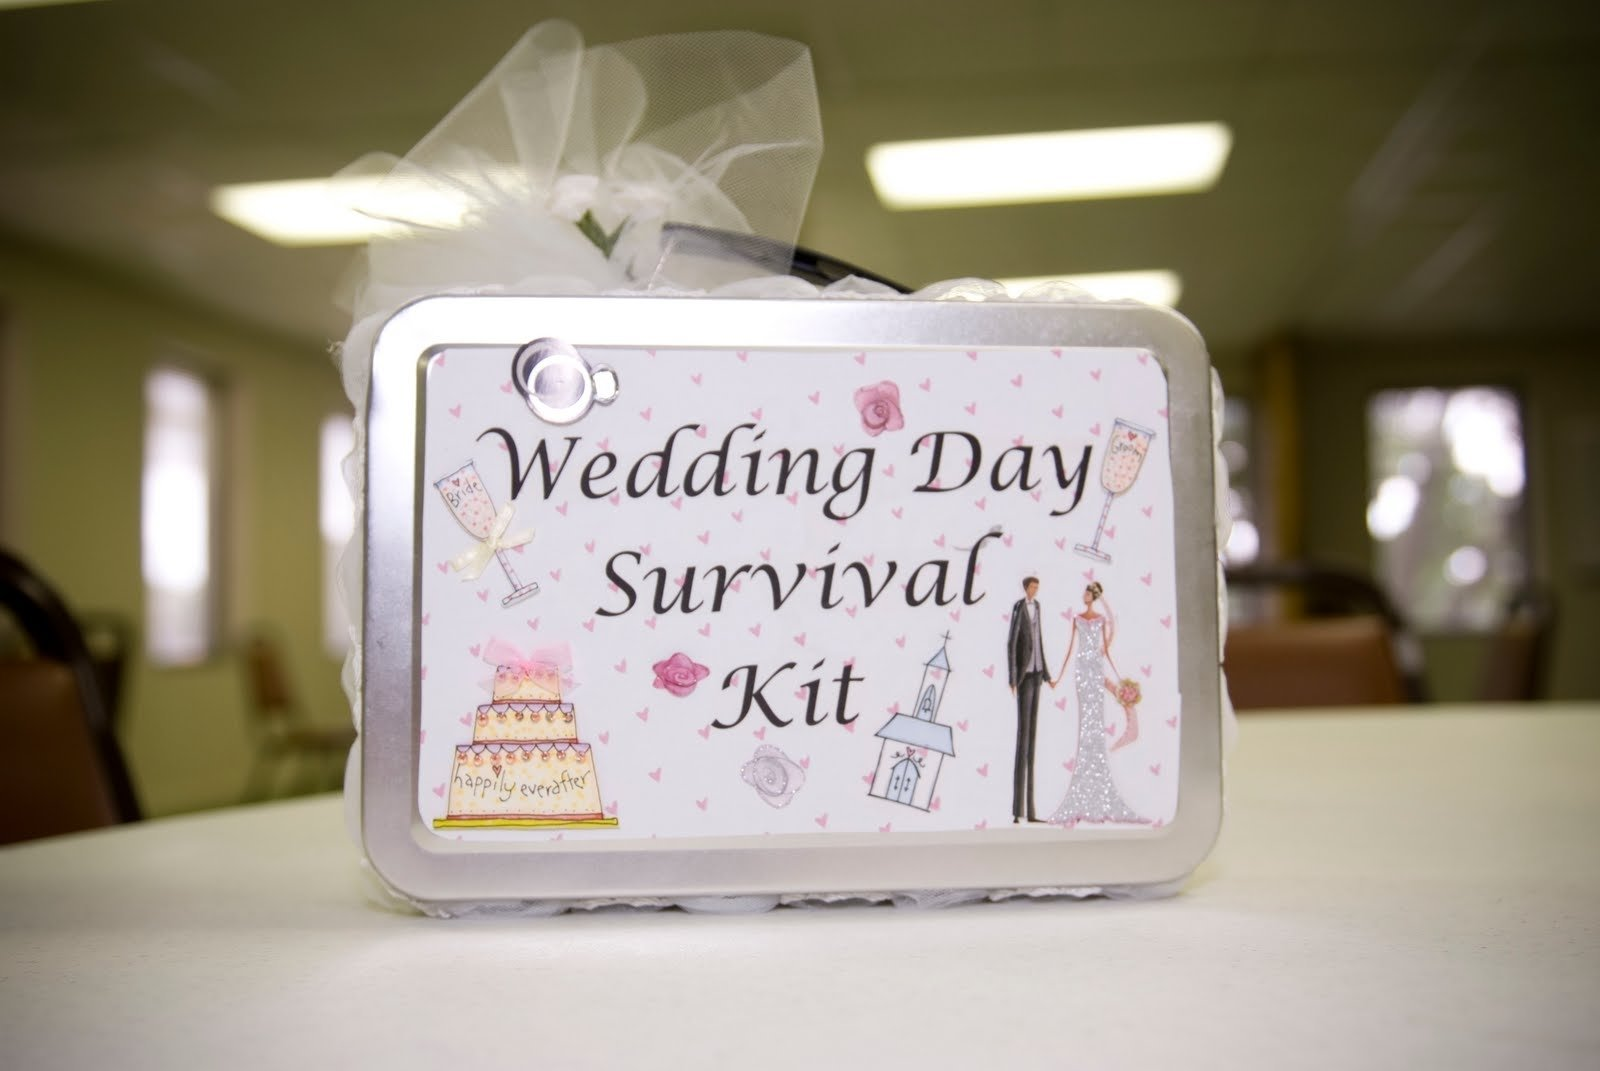 10 Unique Wedding Gift Ideas For Your Bride 2019